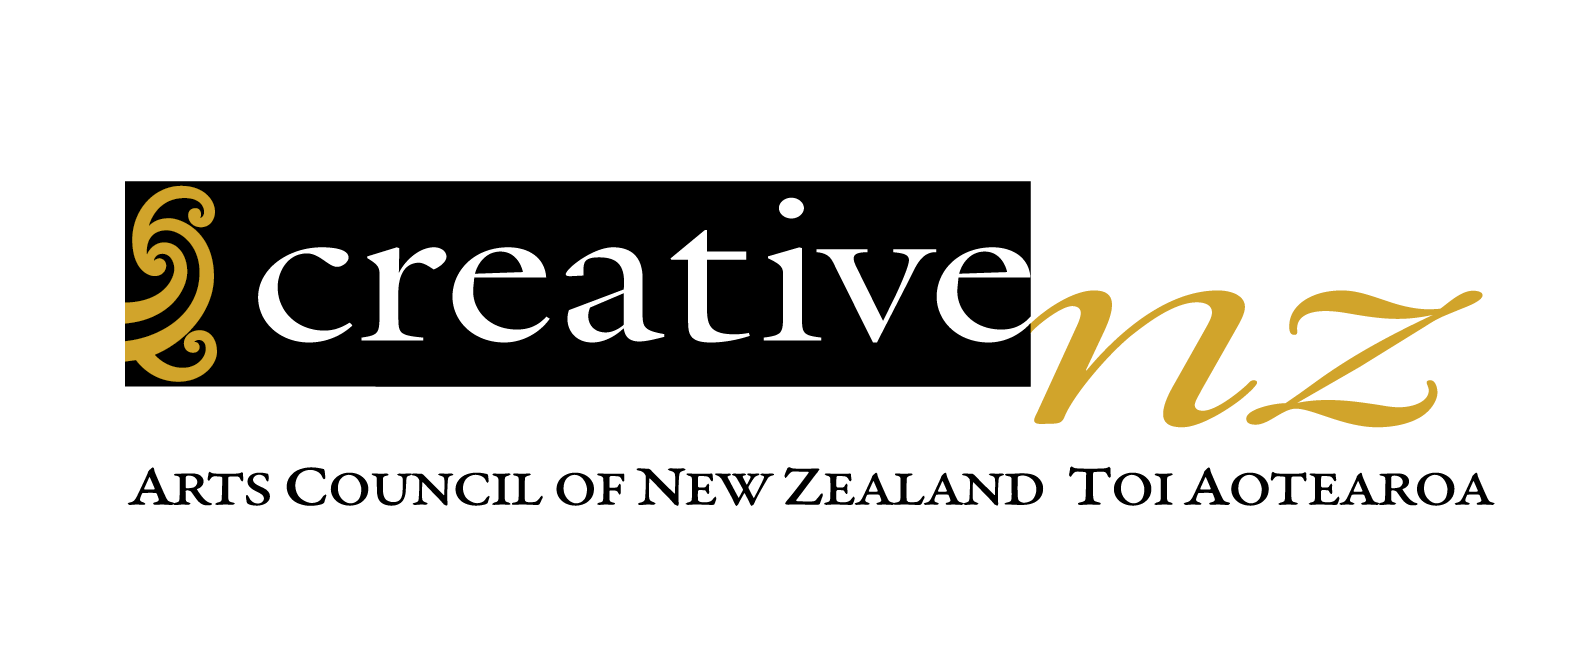 This issue published with the support of Creative New Zealand